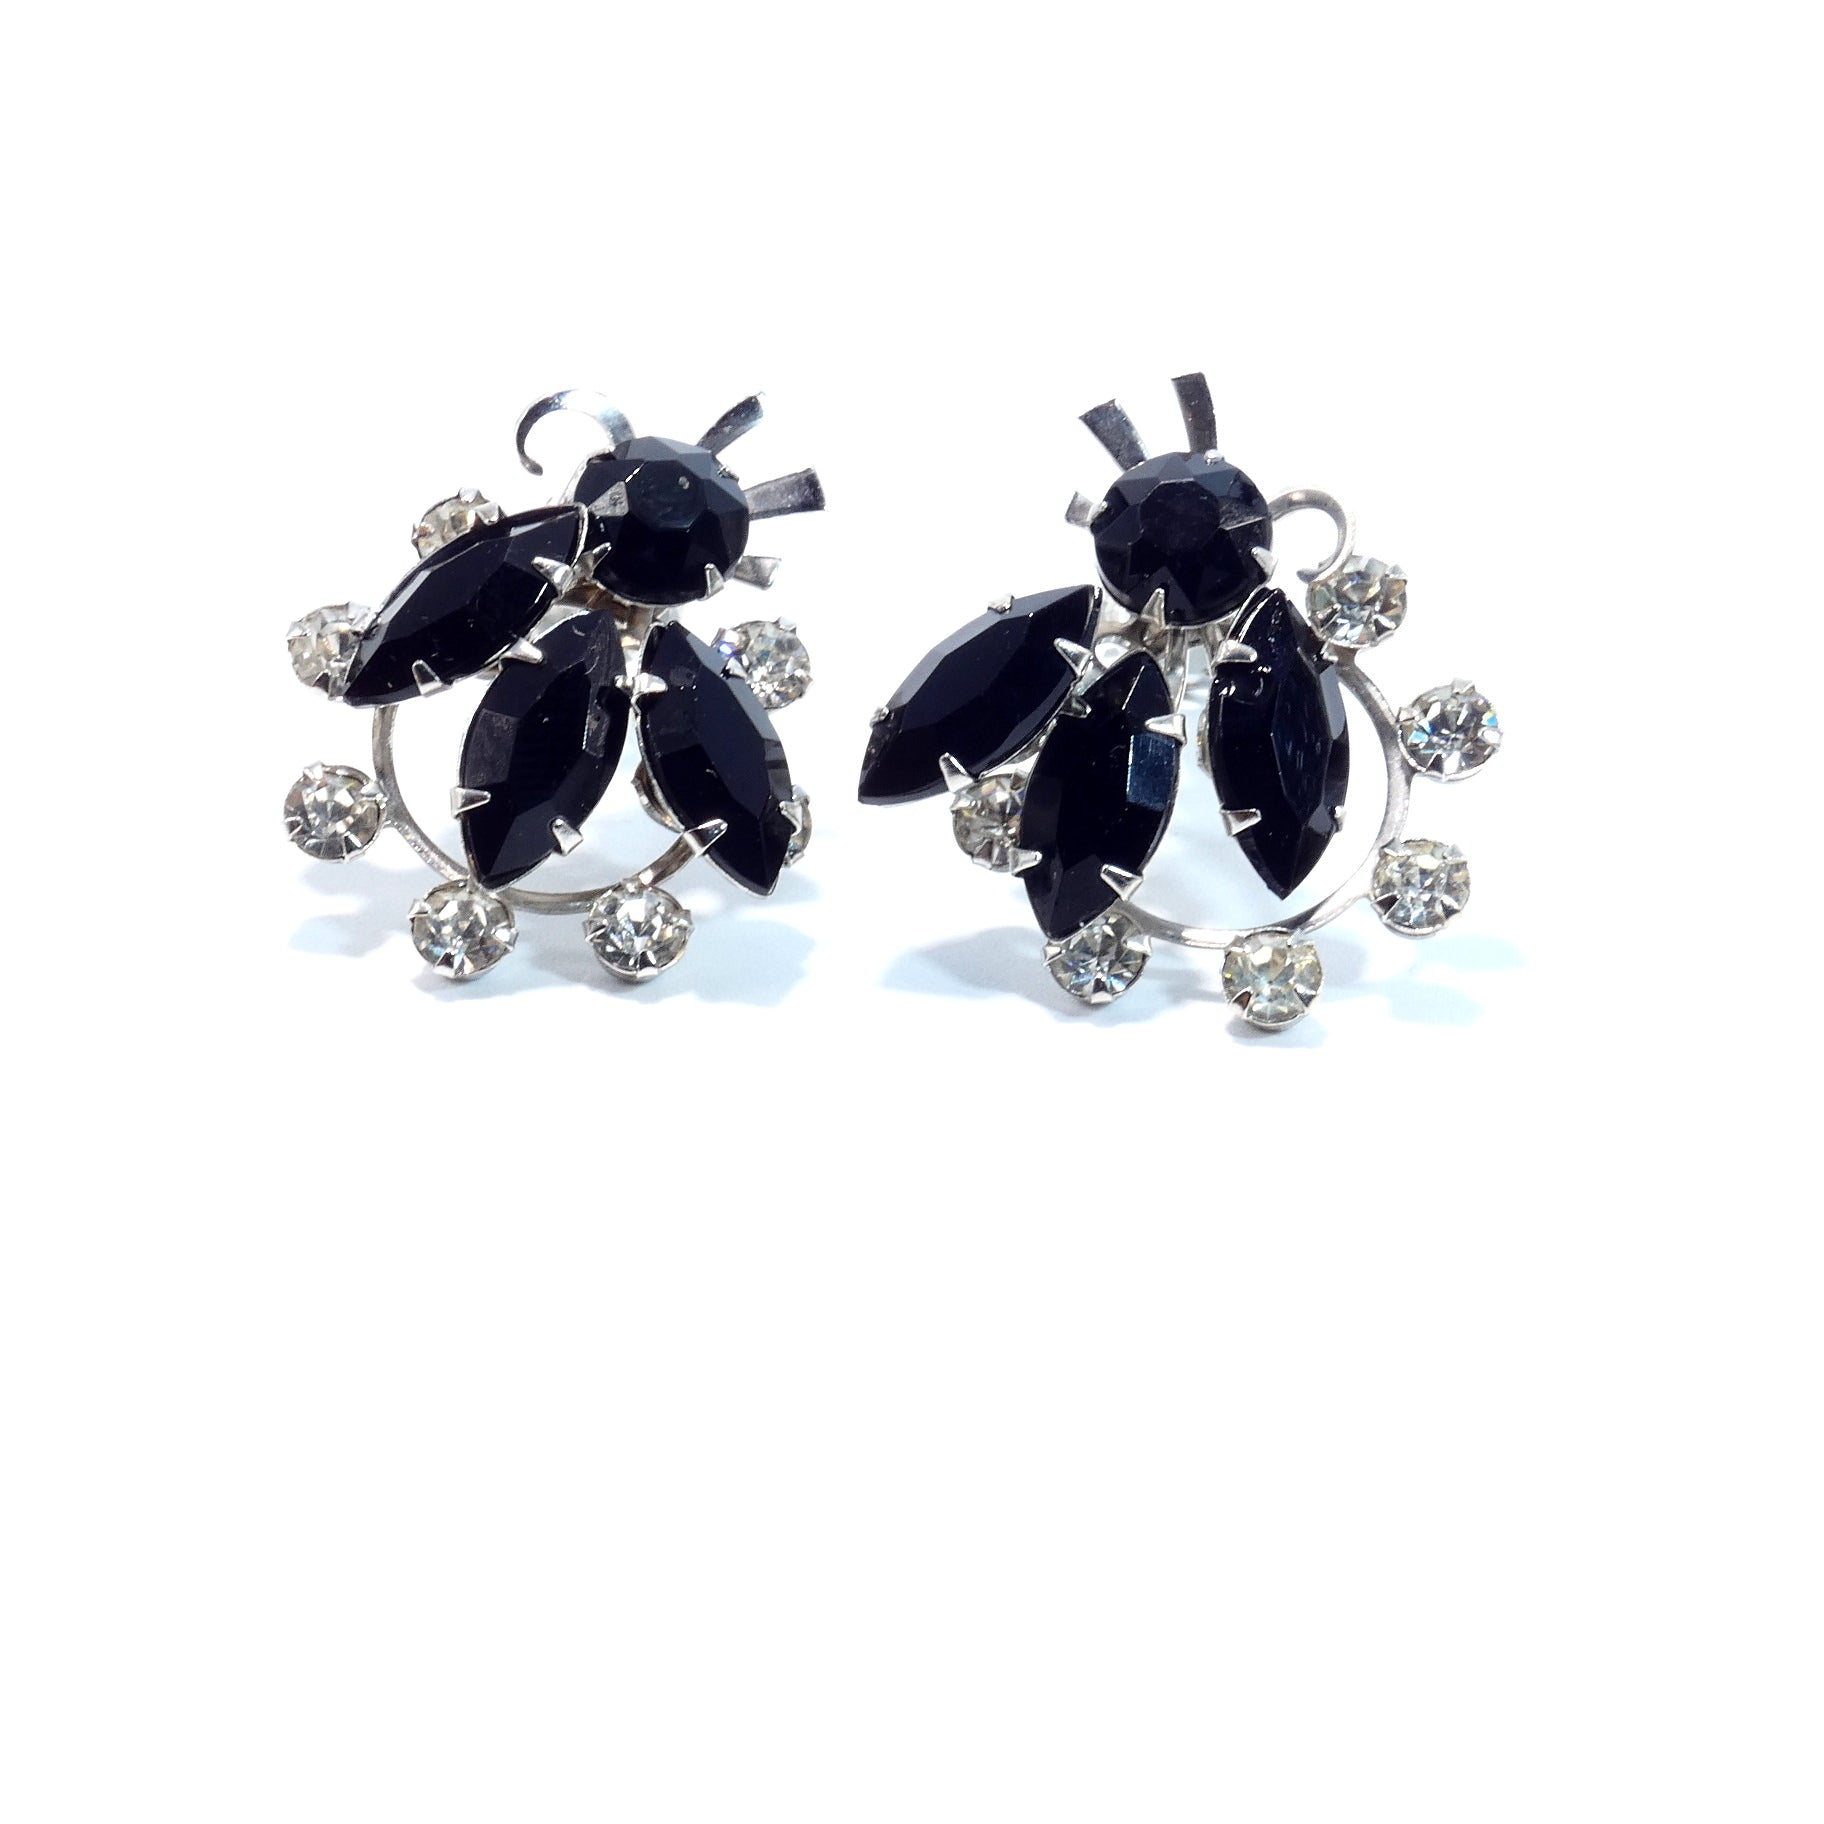 Vintage 1950s Black Rhinestone Flower Design Clip on Earrings